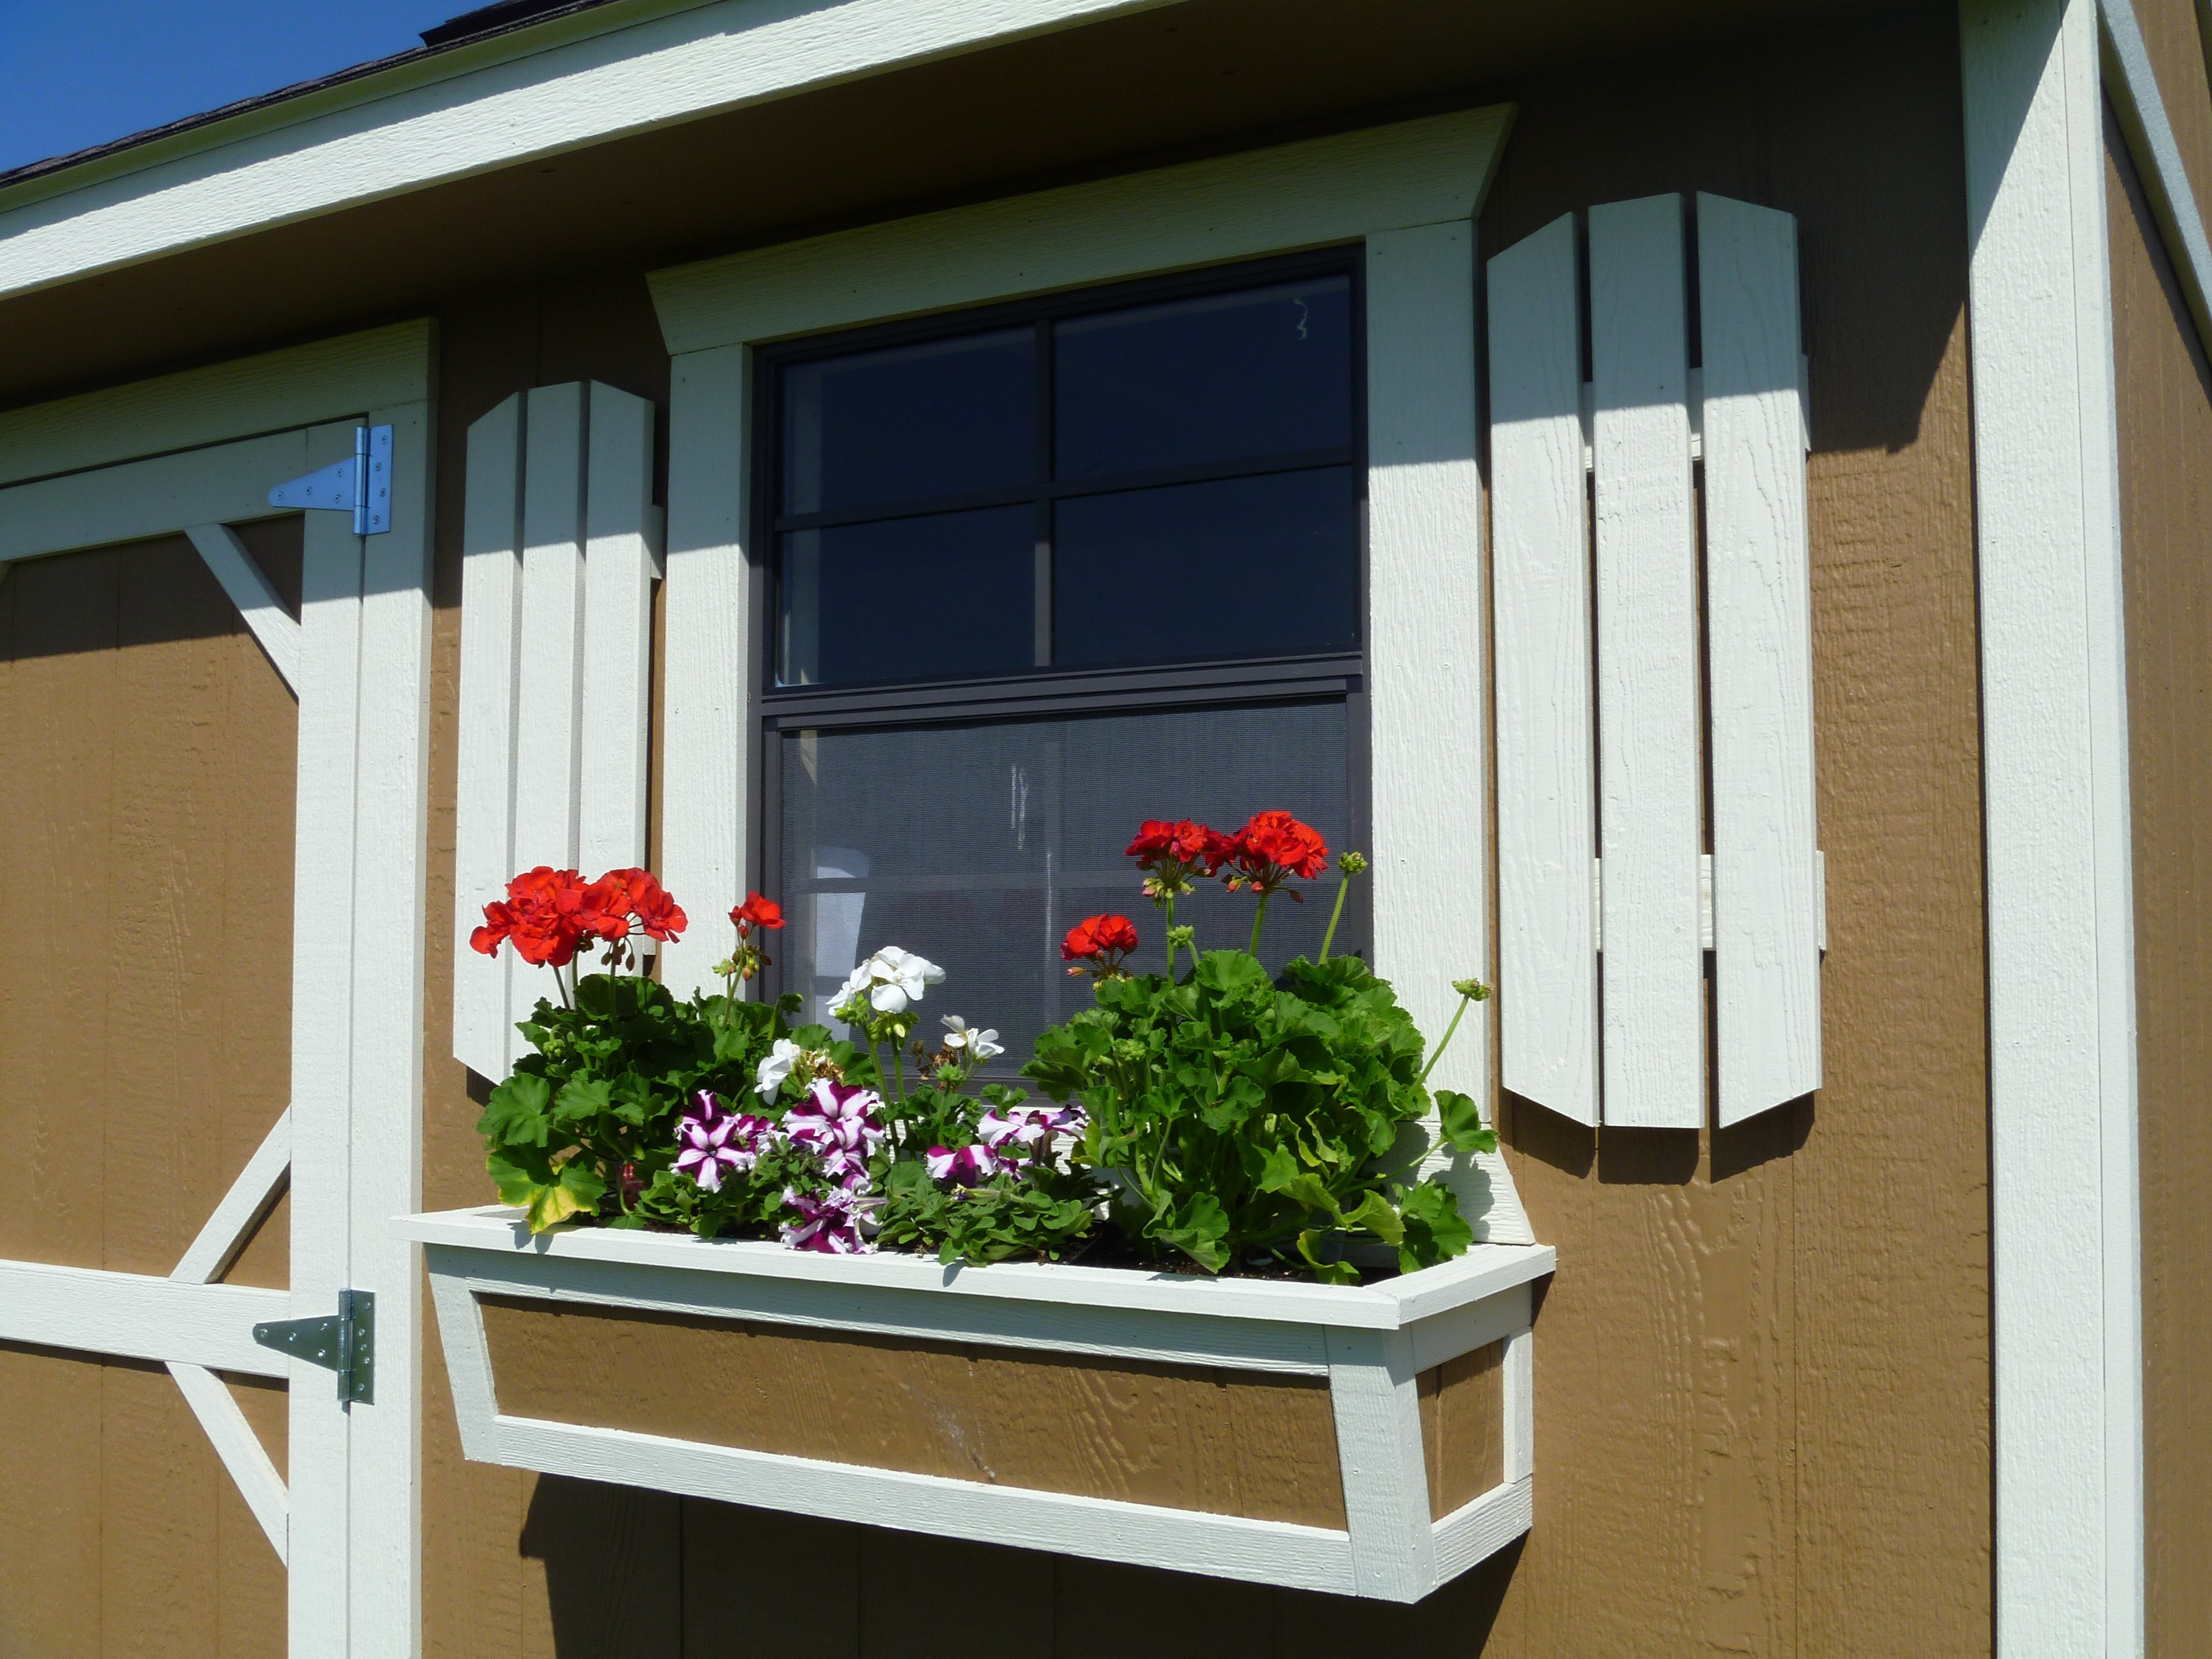 Cook Garden Shed with Flower Box